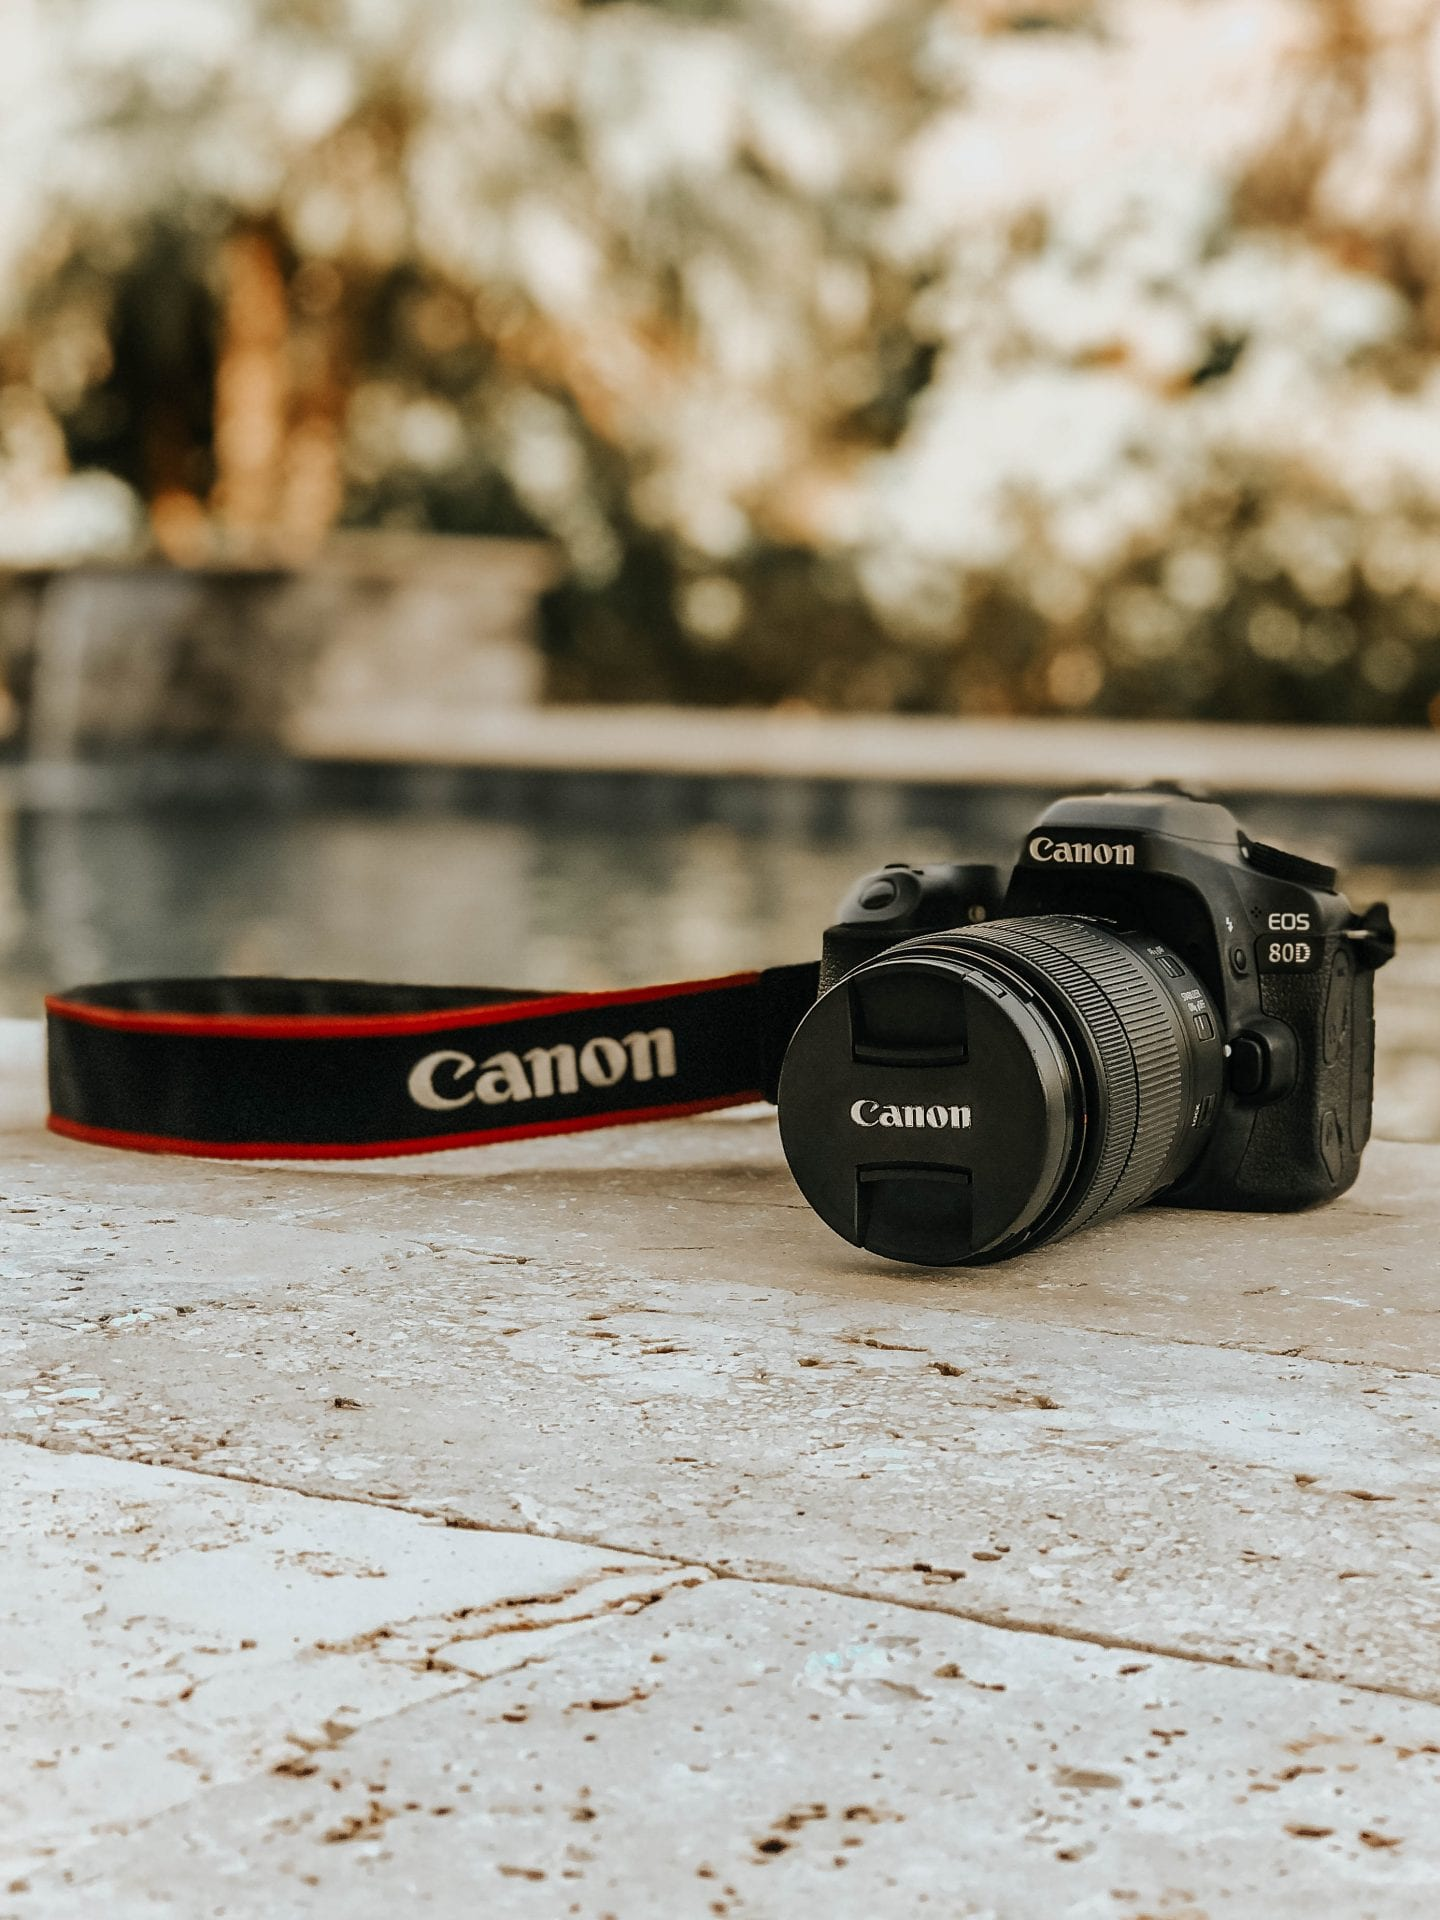 Photography on a Budget: How to Make an Expensive Hobby Affordable